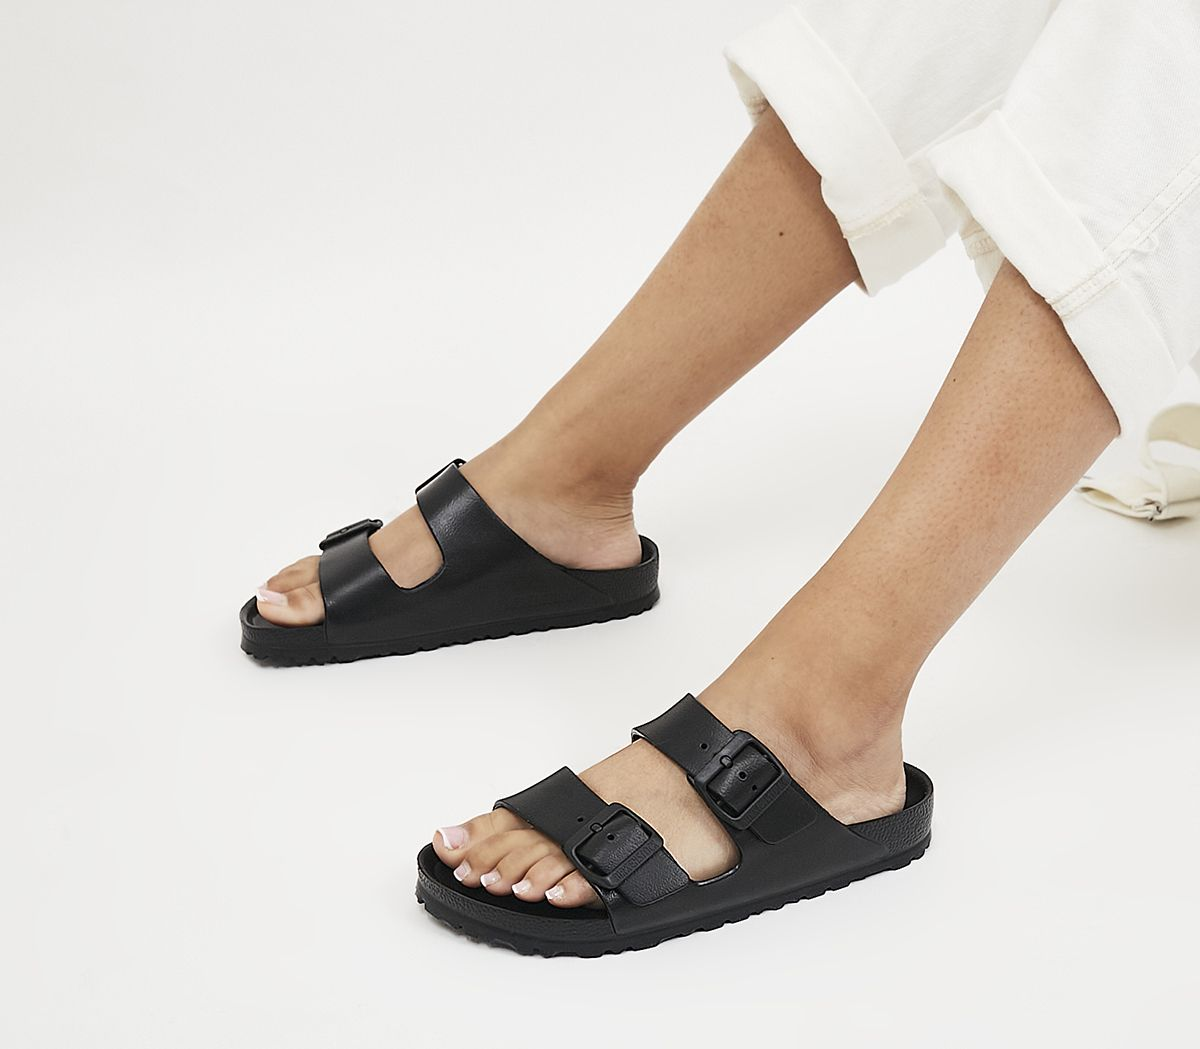 ef601d5134f63 Birkenstock Arizona Two Strap Sandals Black Eva - Sandals